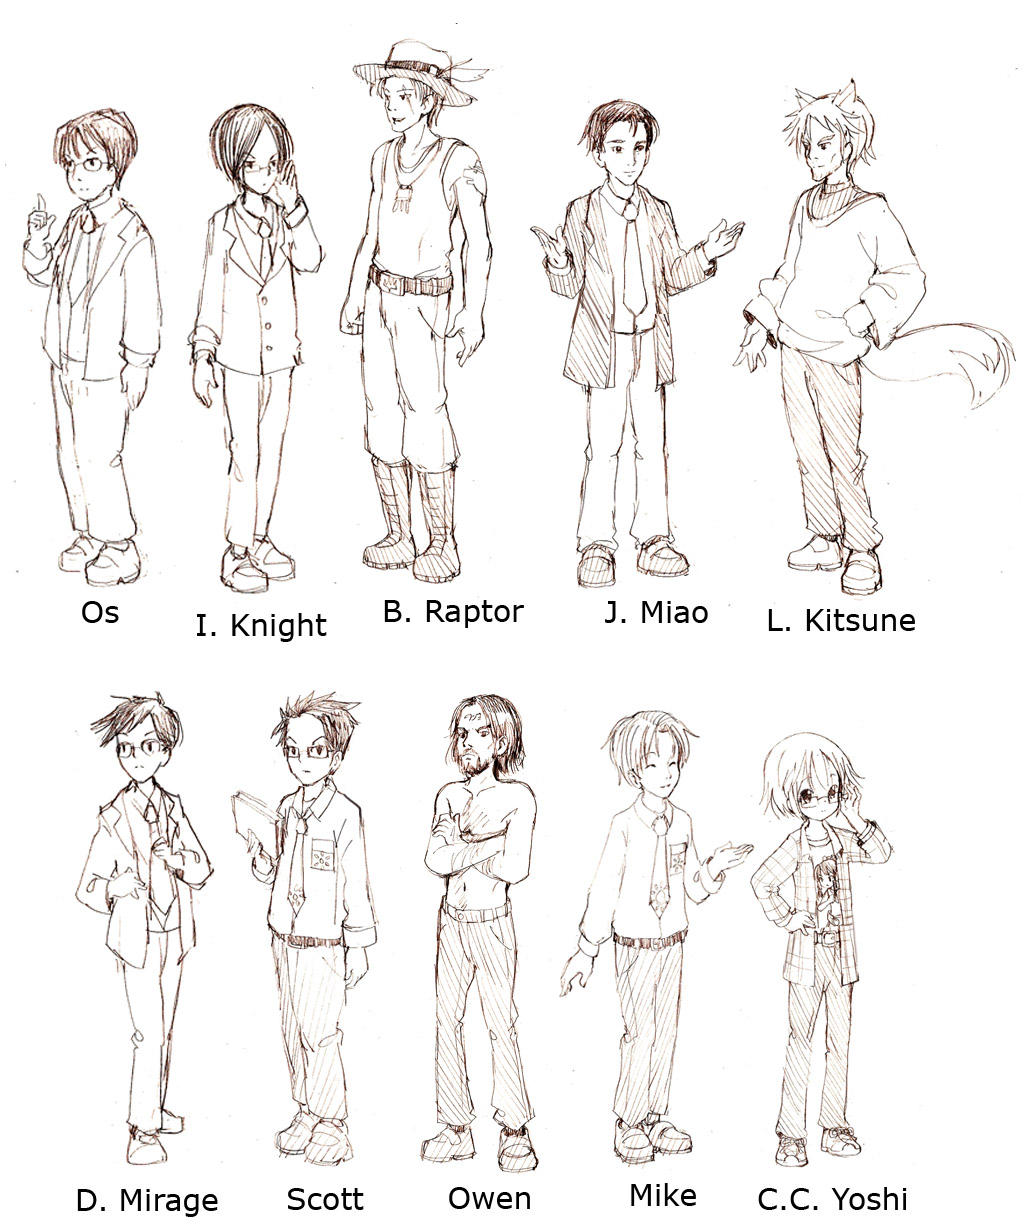 Anime Boy Character Design : Anime character design share on characterdesign petal